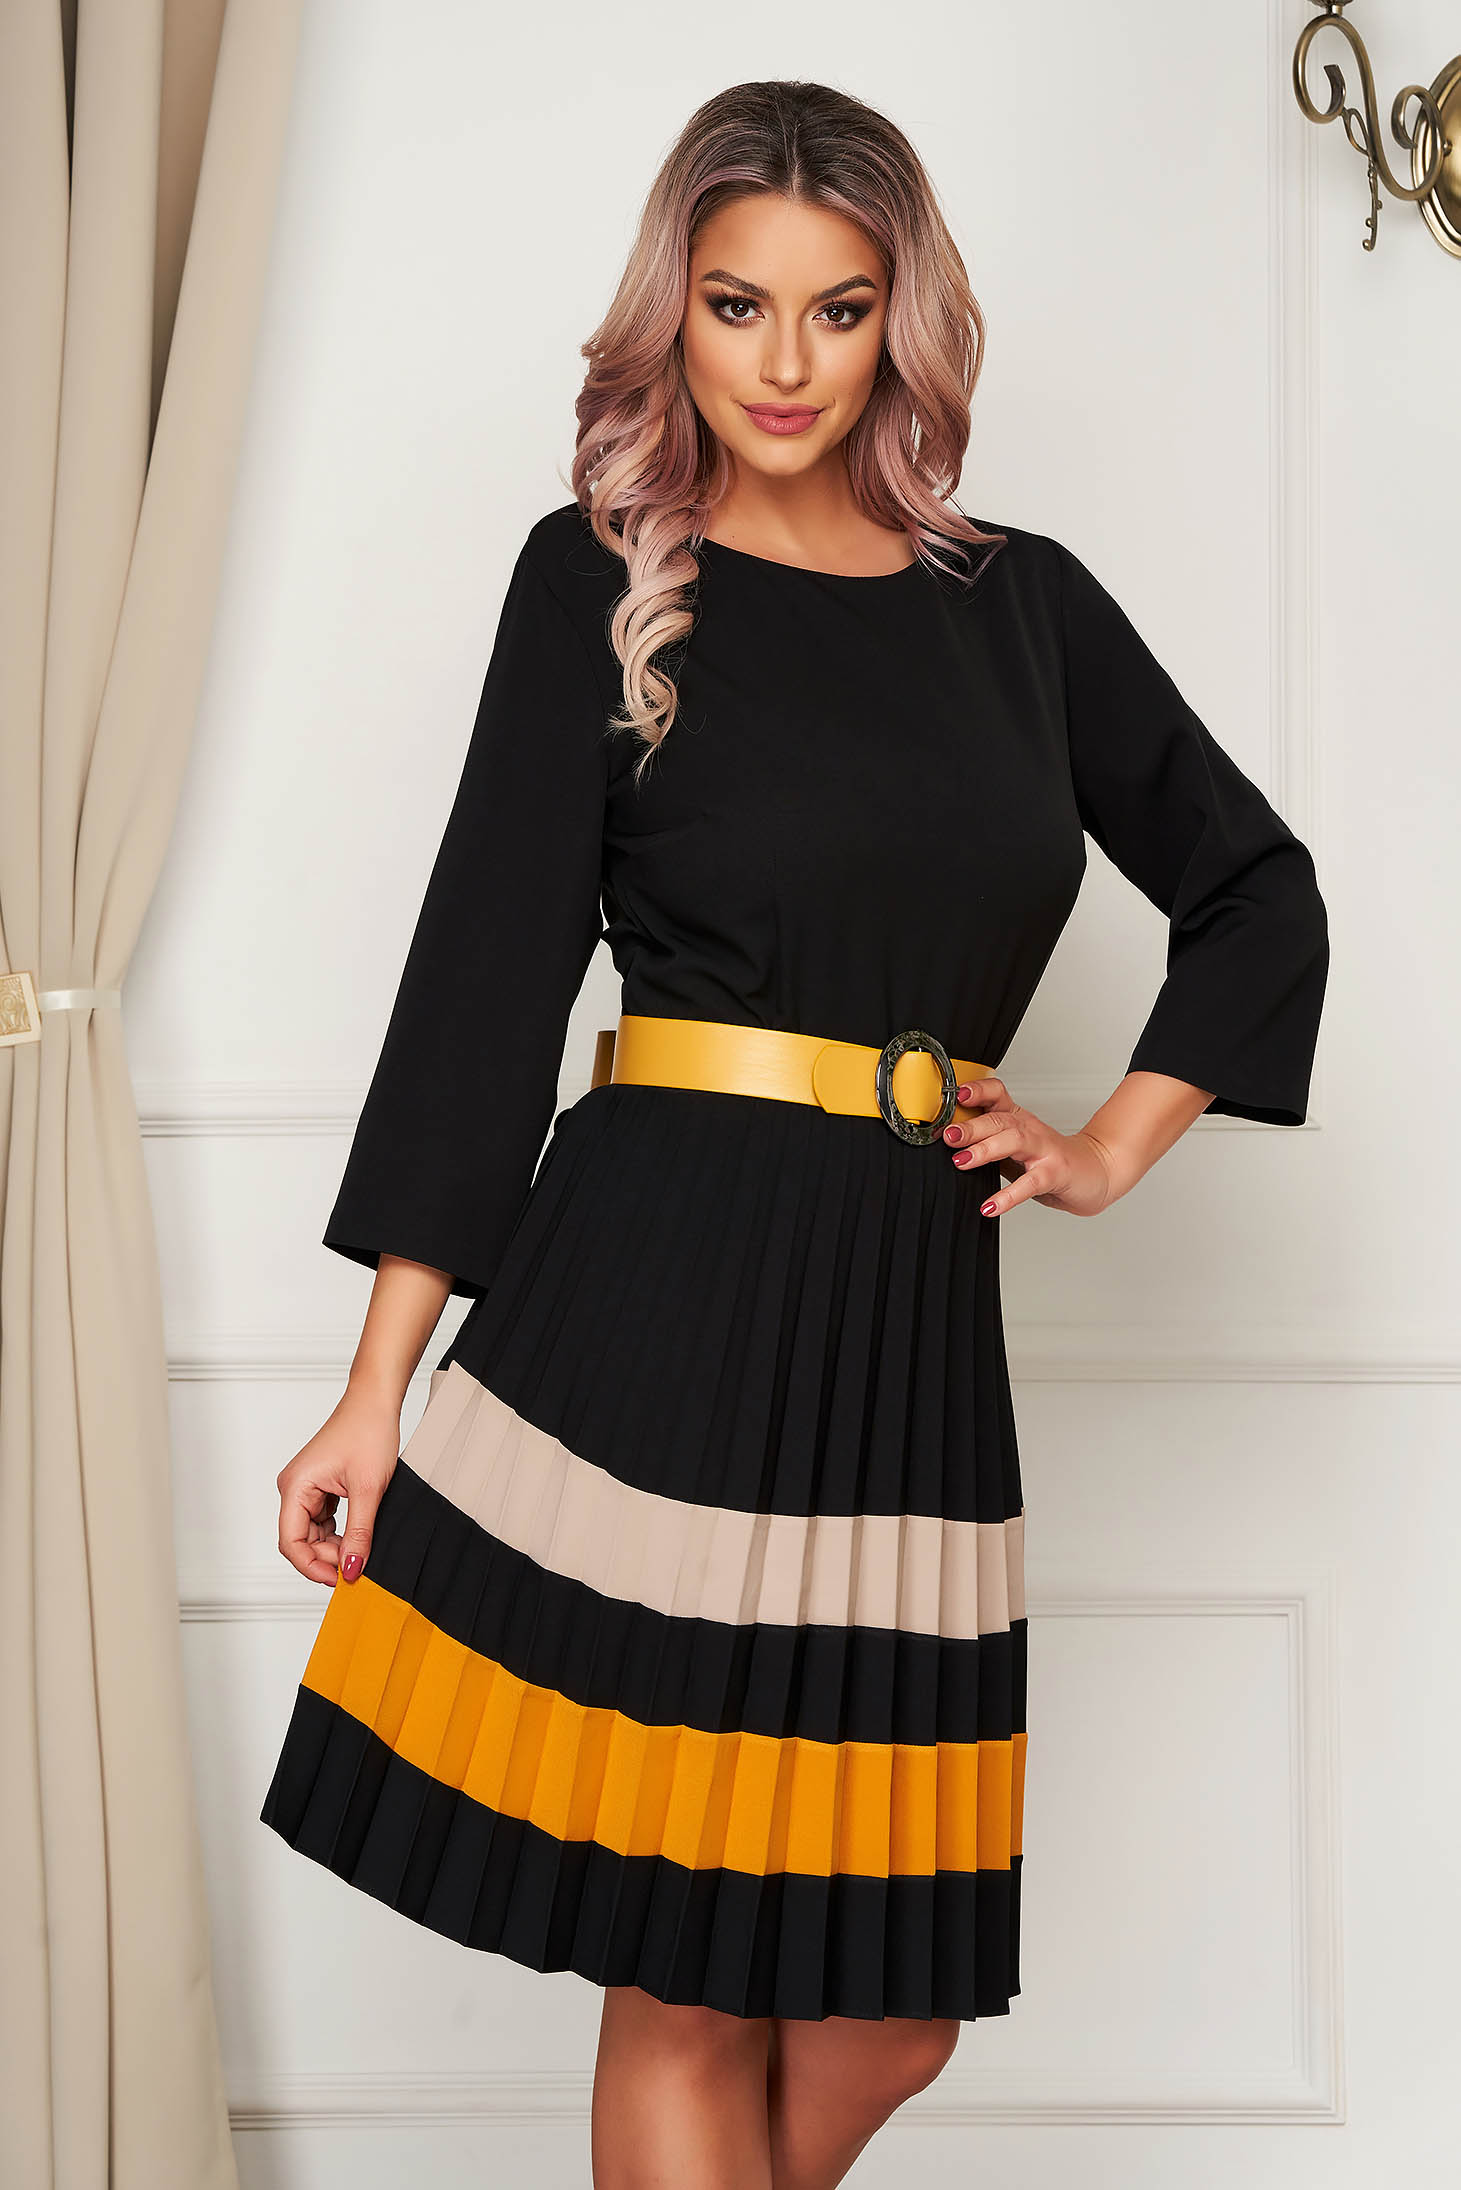 Yellow dress office slightly elastic fabric folded up accessorized with belt cloche